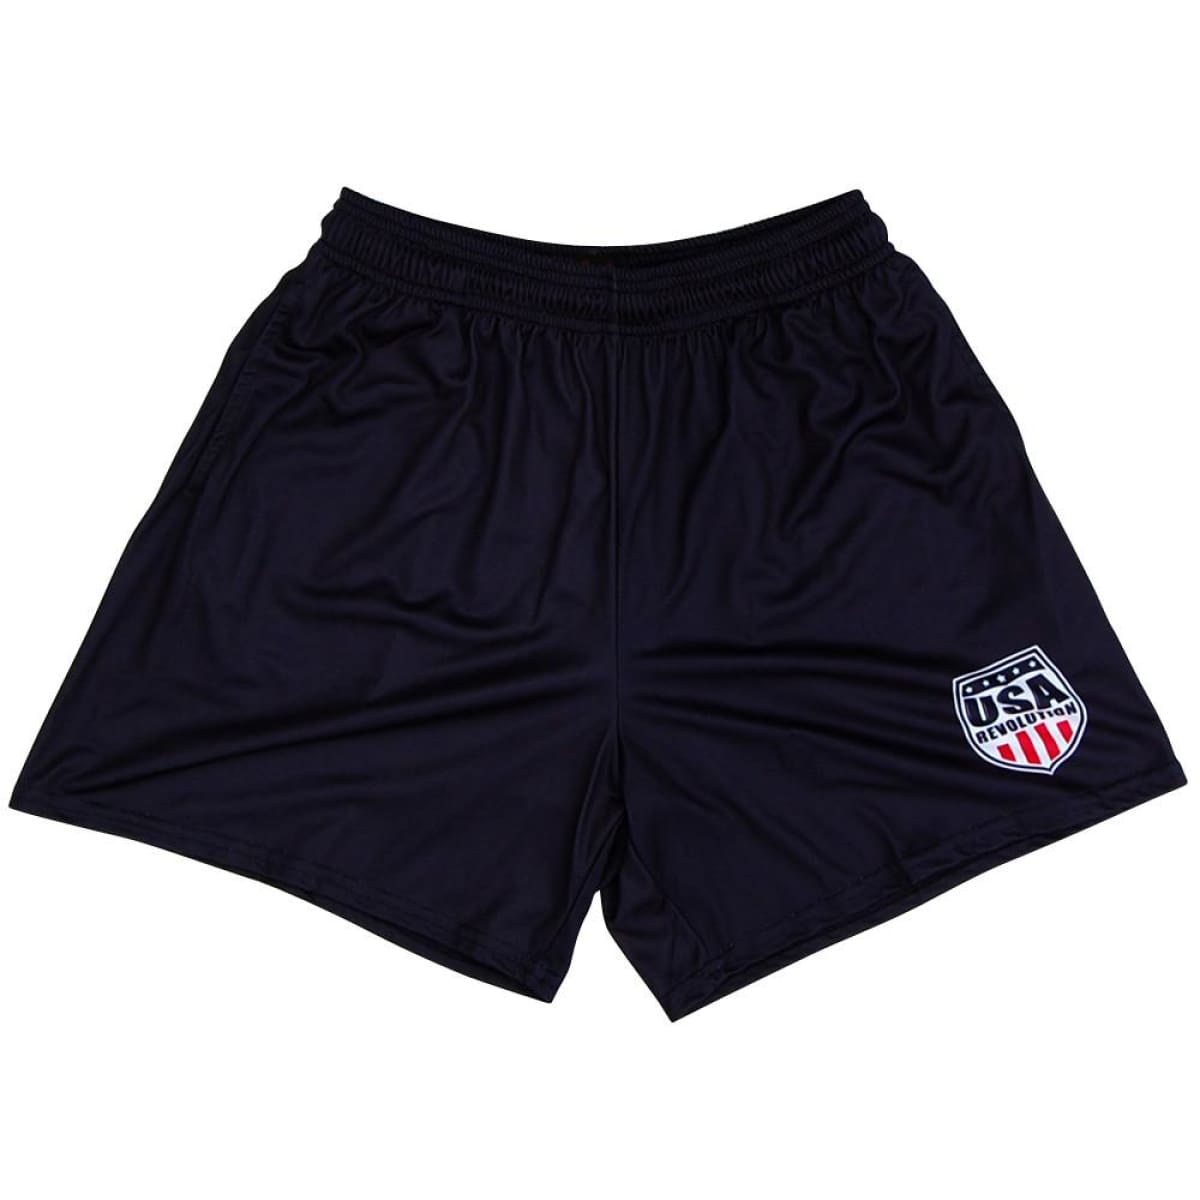 USA Revolution Navy Shorts - Navy / Adult Small - Ruckus Rugby Shorts